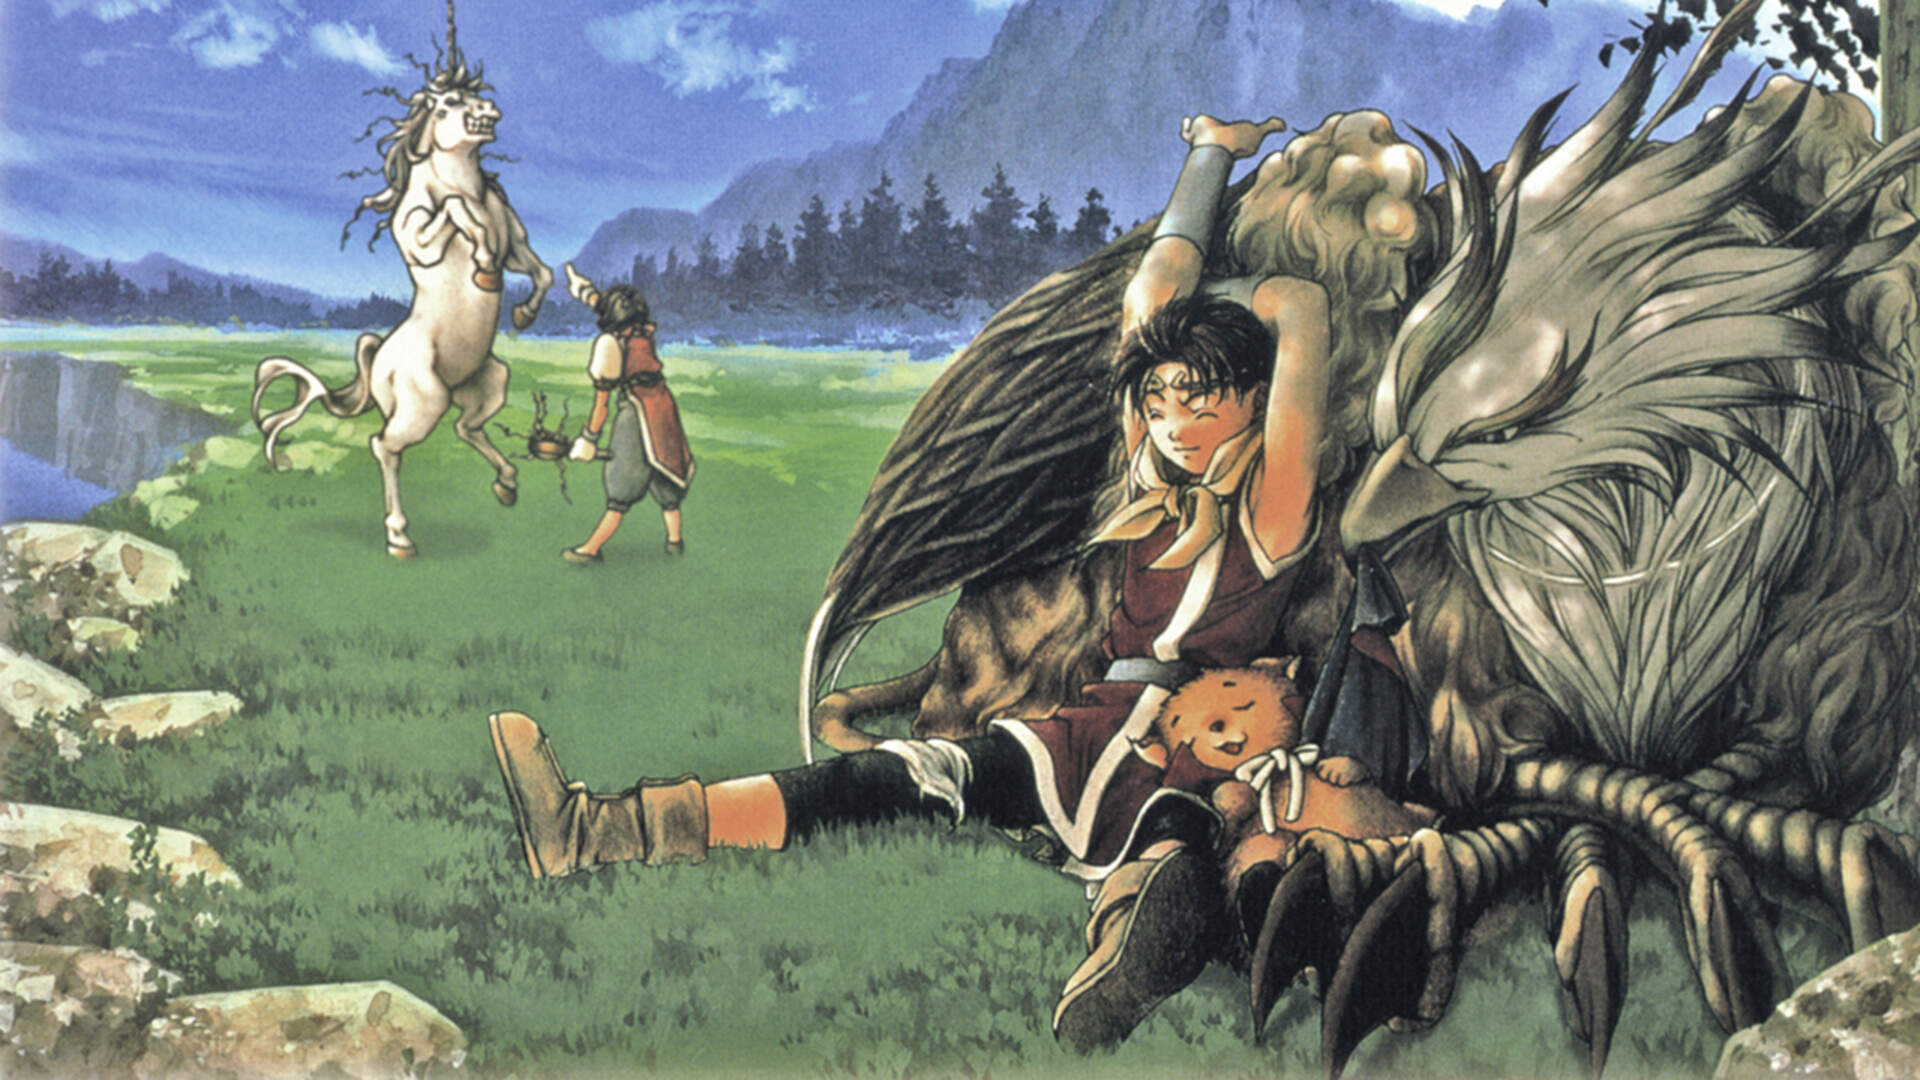 Suikoden 2's Side Story Turns 20 Today, And So Does One of the Best Game Intros Ever Made